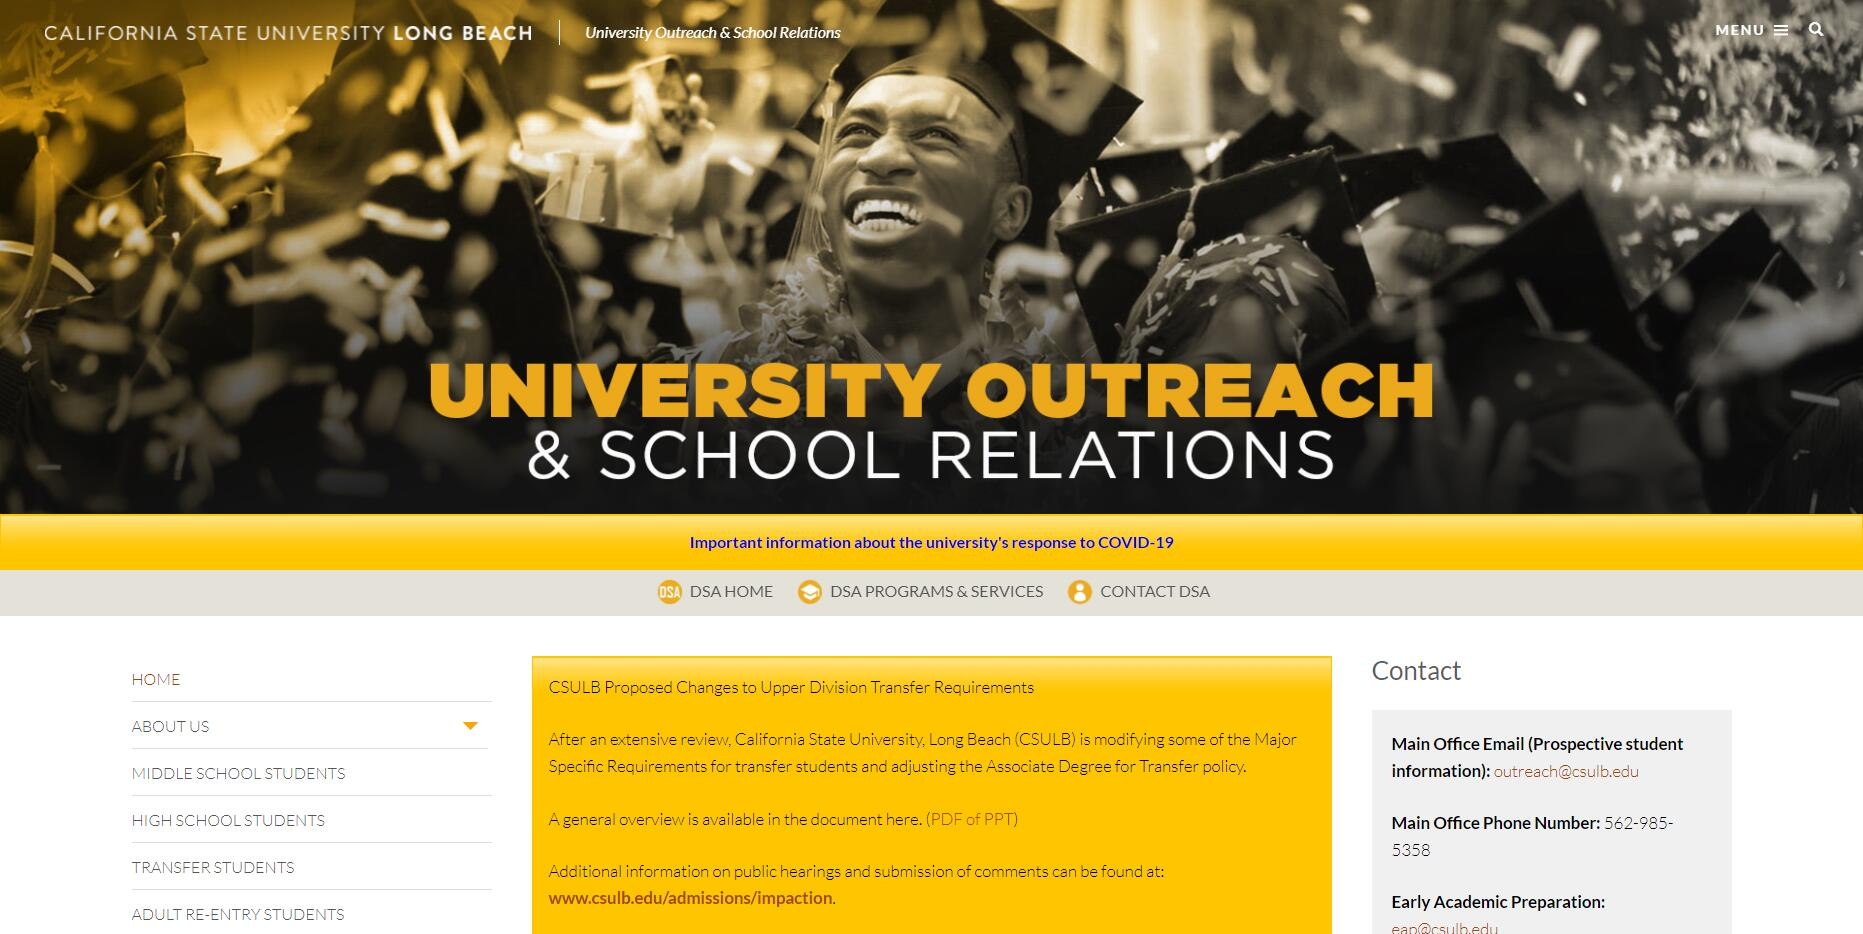 CSULB University Outreach & School Relations - Overview